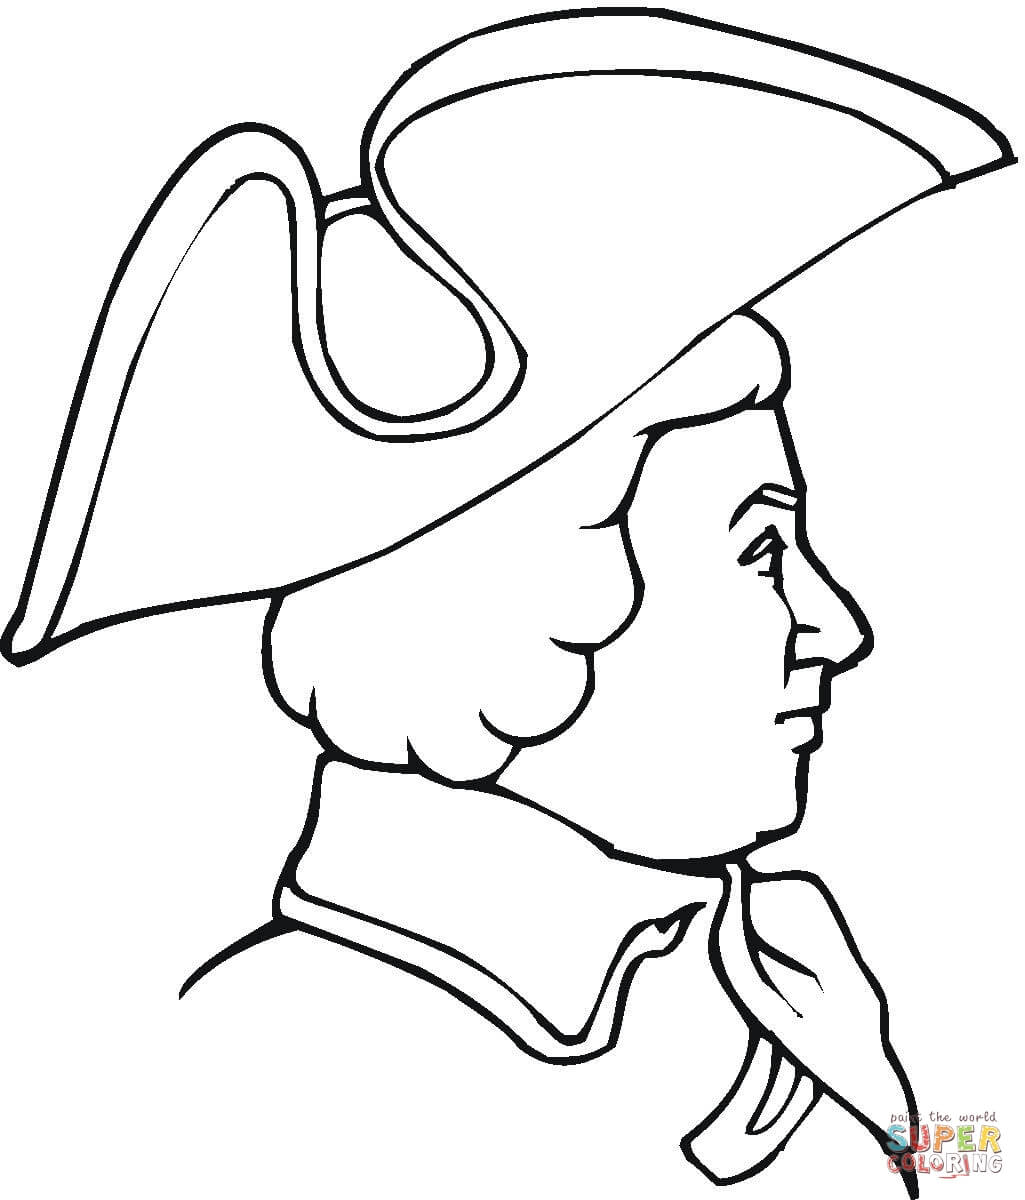 1025x1200 Boston Tea Party Coloring Page Free Printable Coloring Pages